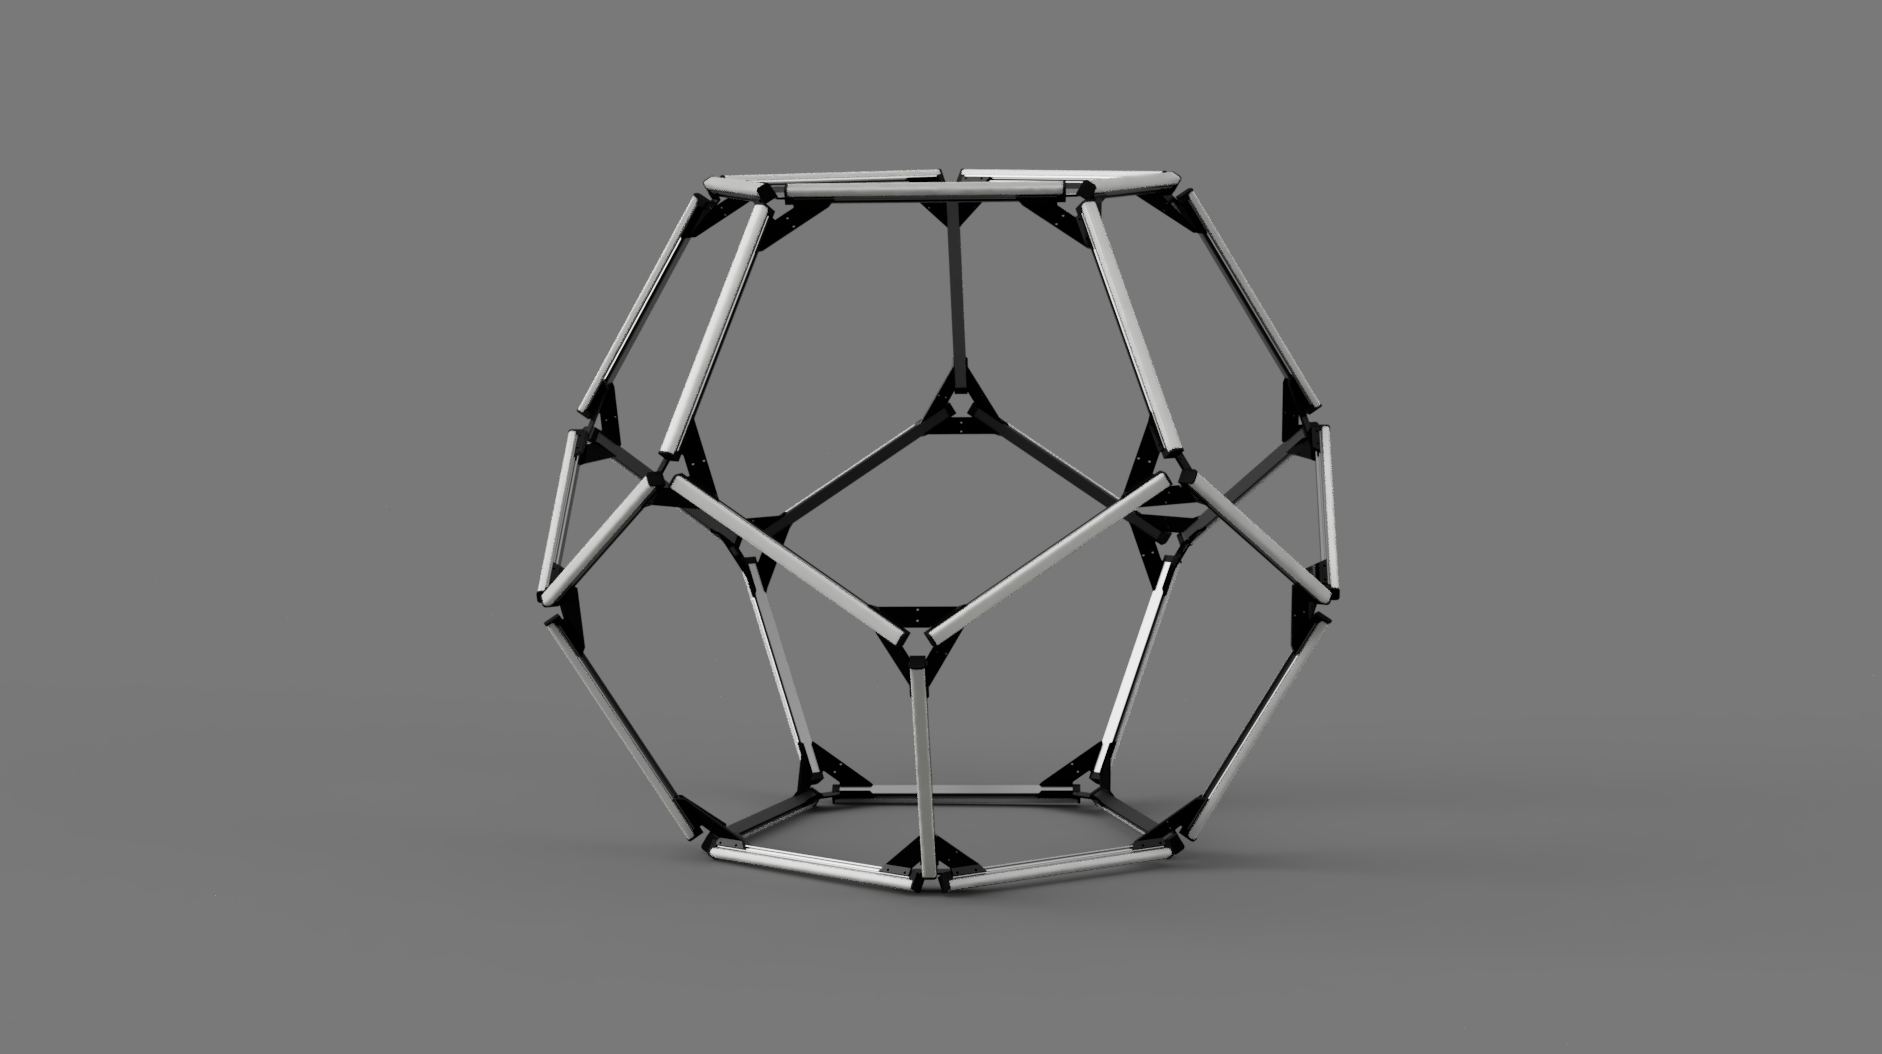 dodecahedron platonic solid